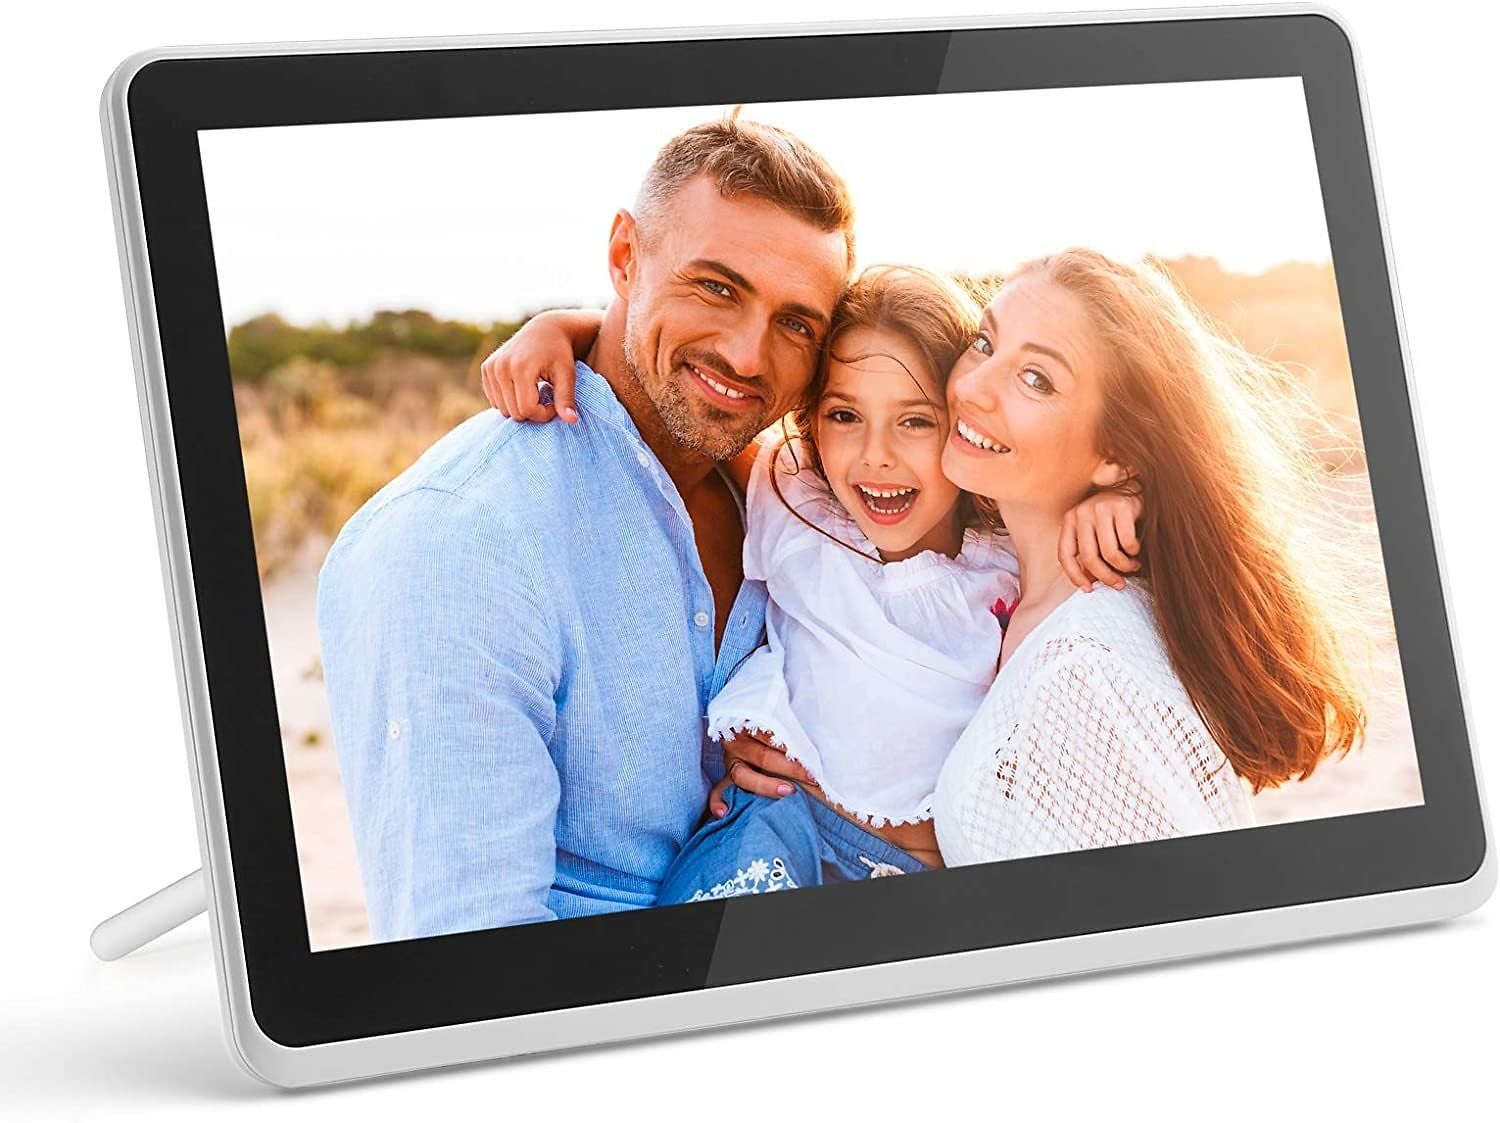 Digital Photo Frame WiFi Digital Picture Frame Kimire 1920x1080 Touch Screen, Support Thumb USB Drive and SD Slot, Music Player,